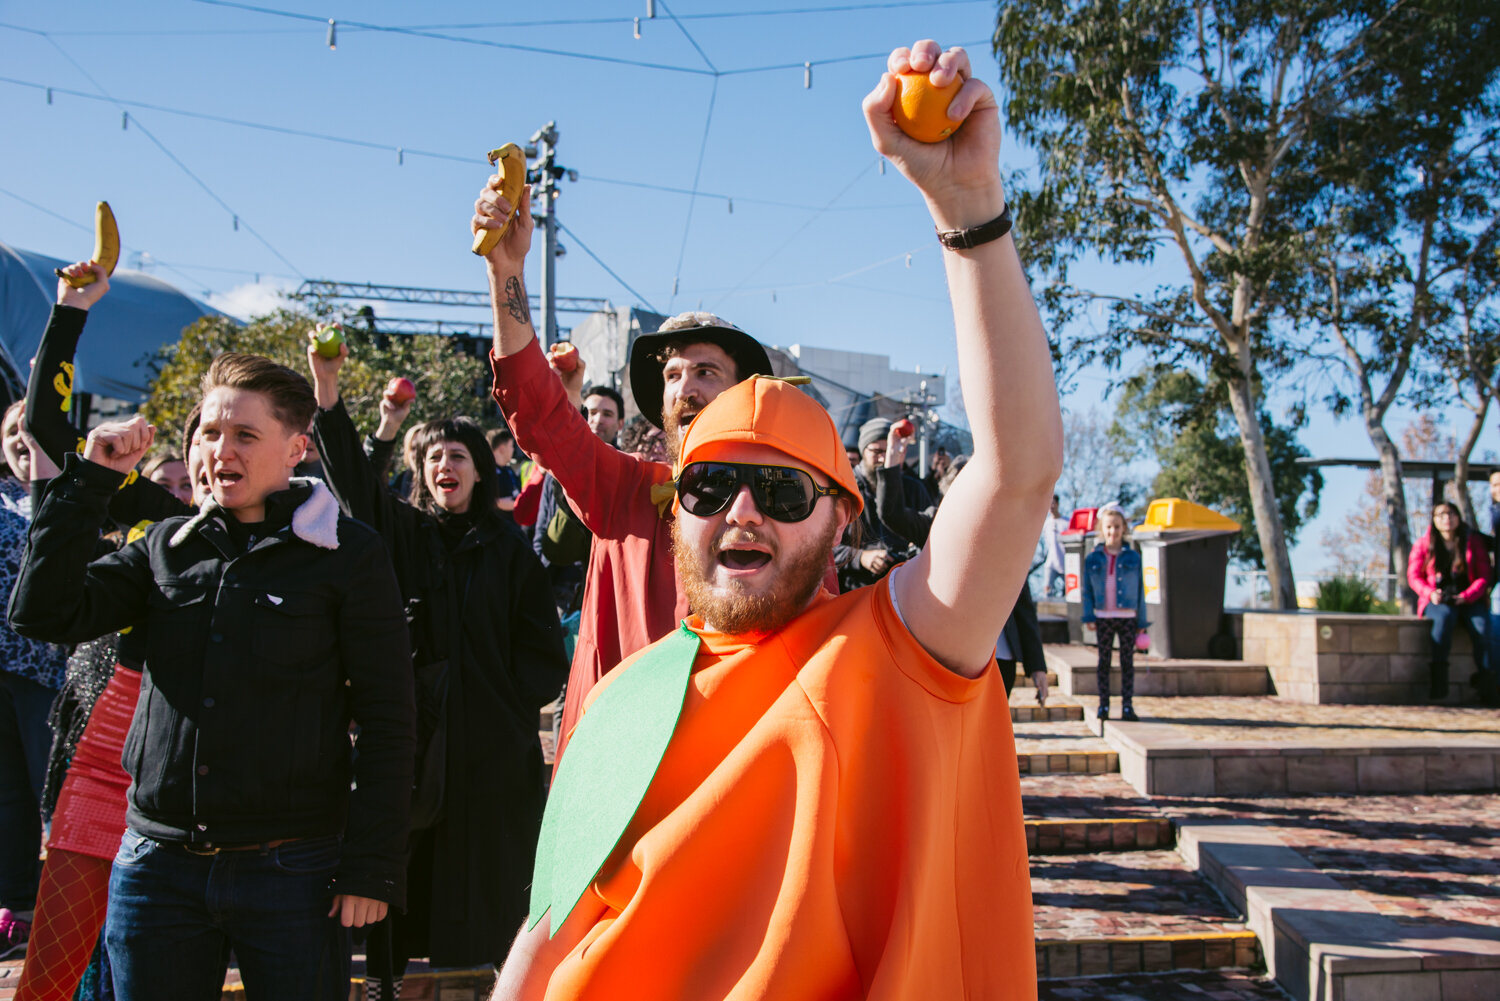 Episode 10 centred around the idea of 'Serious Play', shown by staging a protest of the then in-development Apple Store in Federation Square.